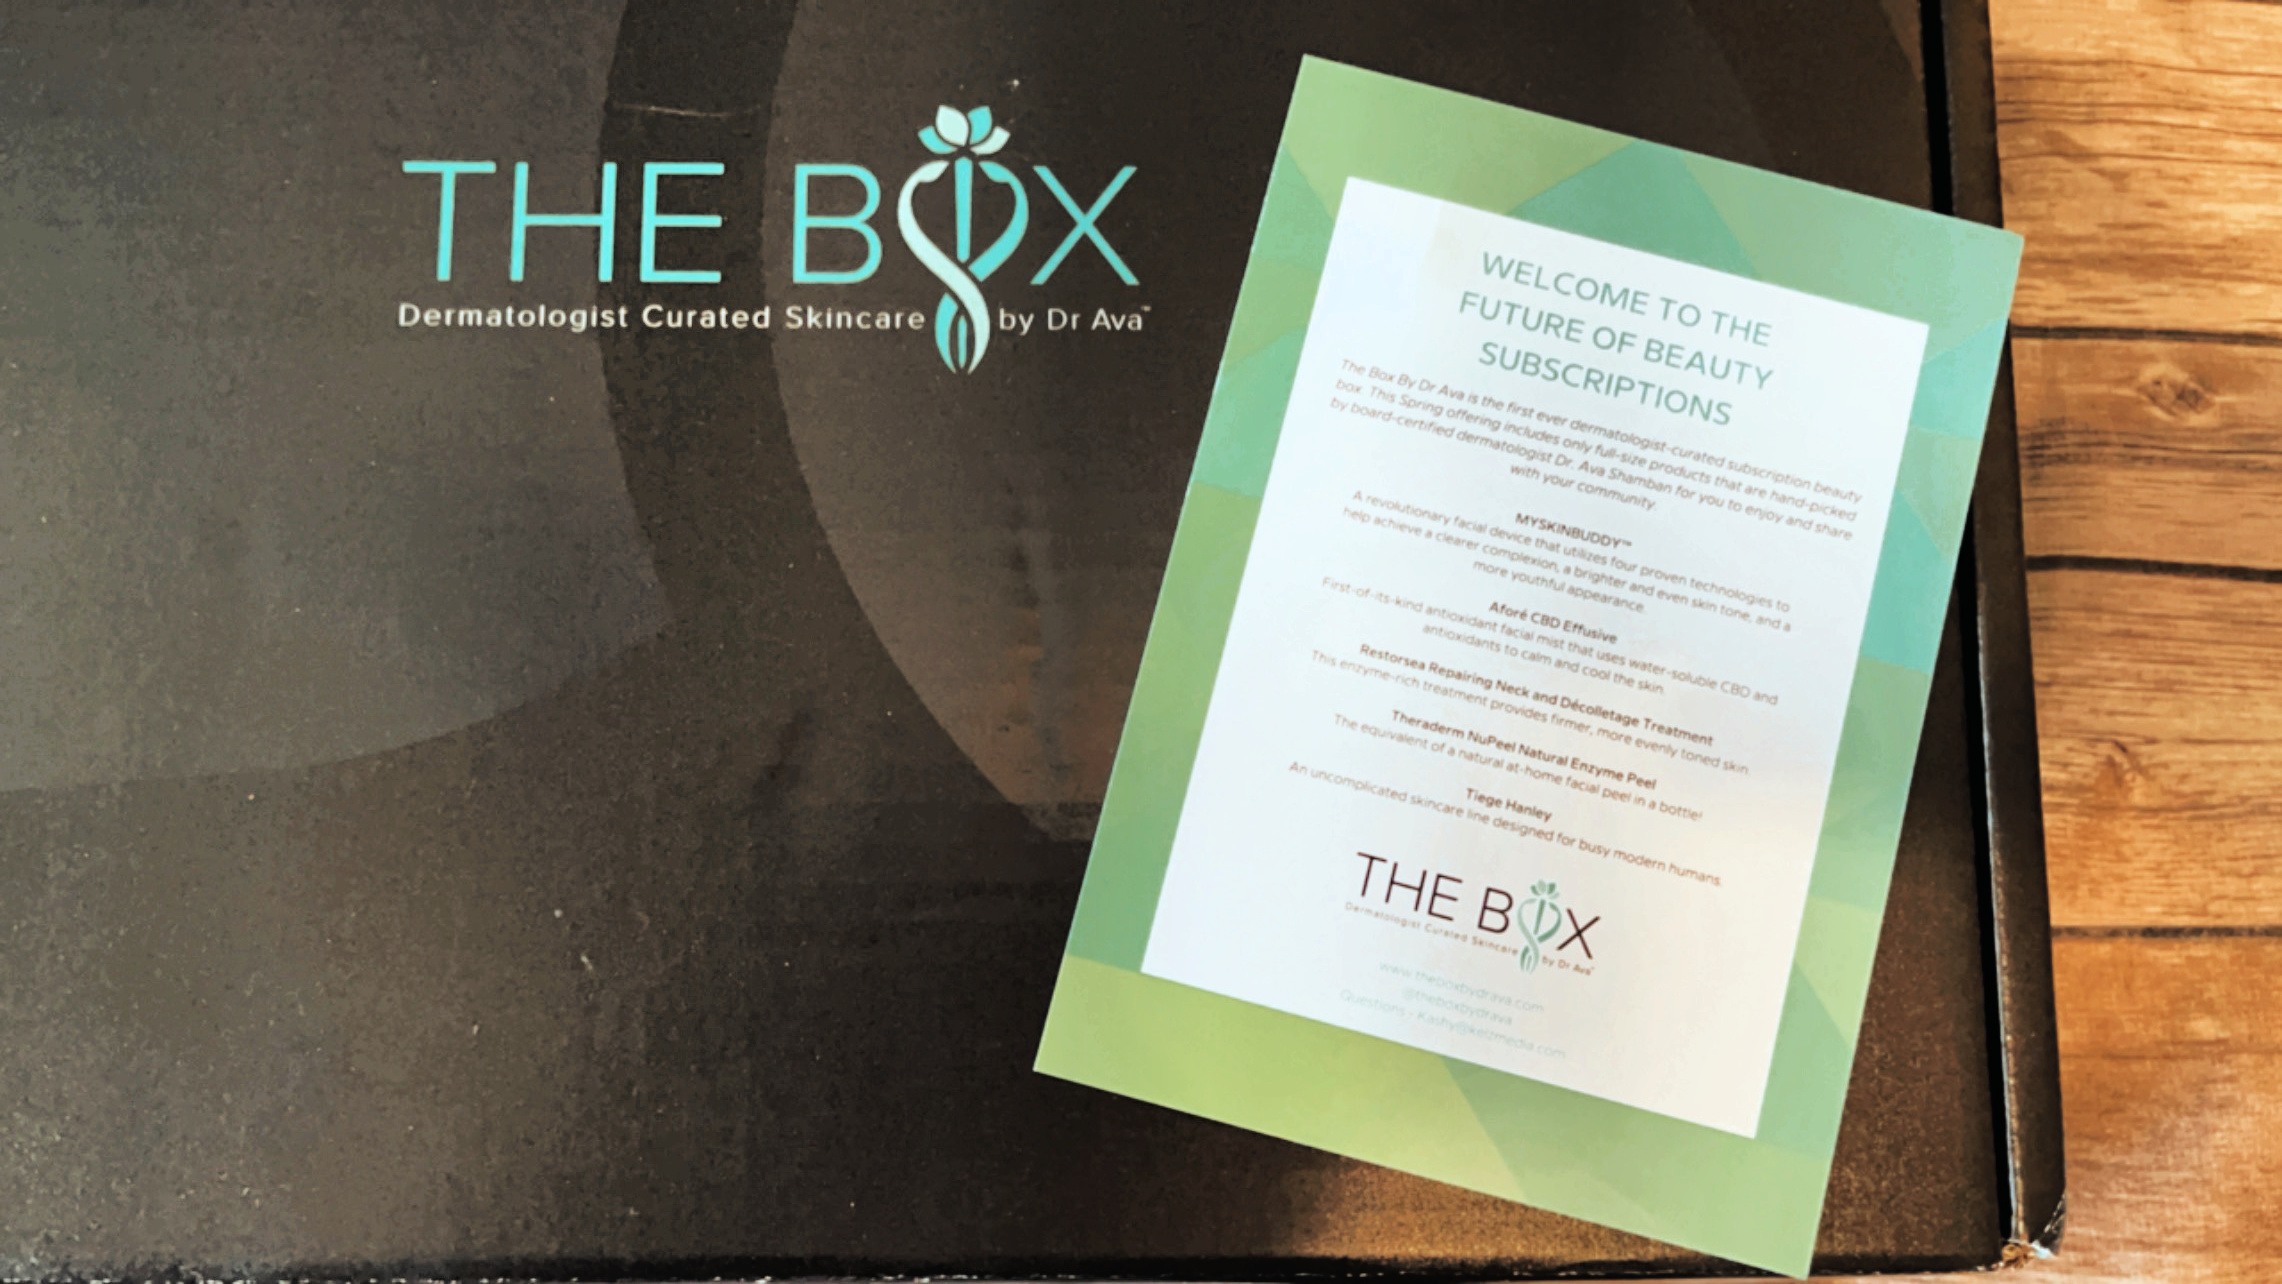 The Box by Dr. Ava: A Dermatologist-Curated Subscription Box